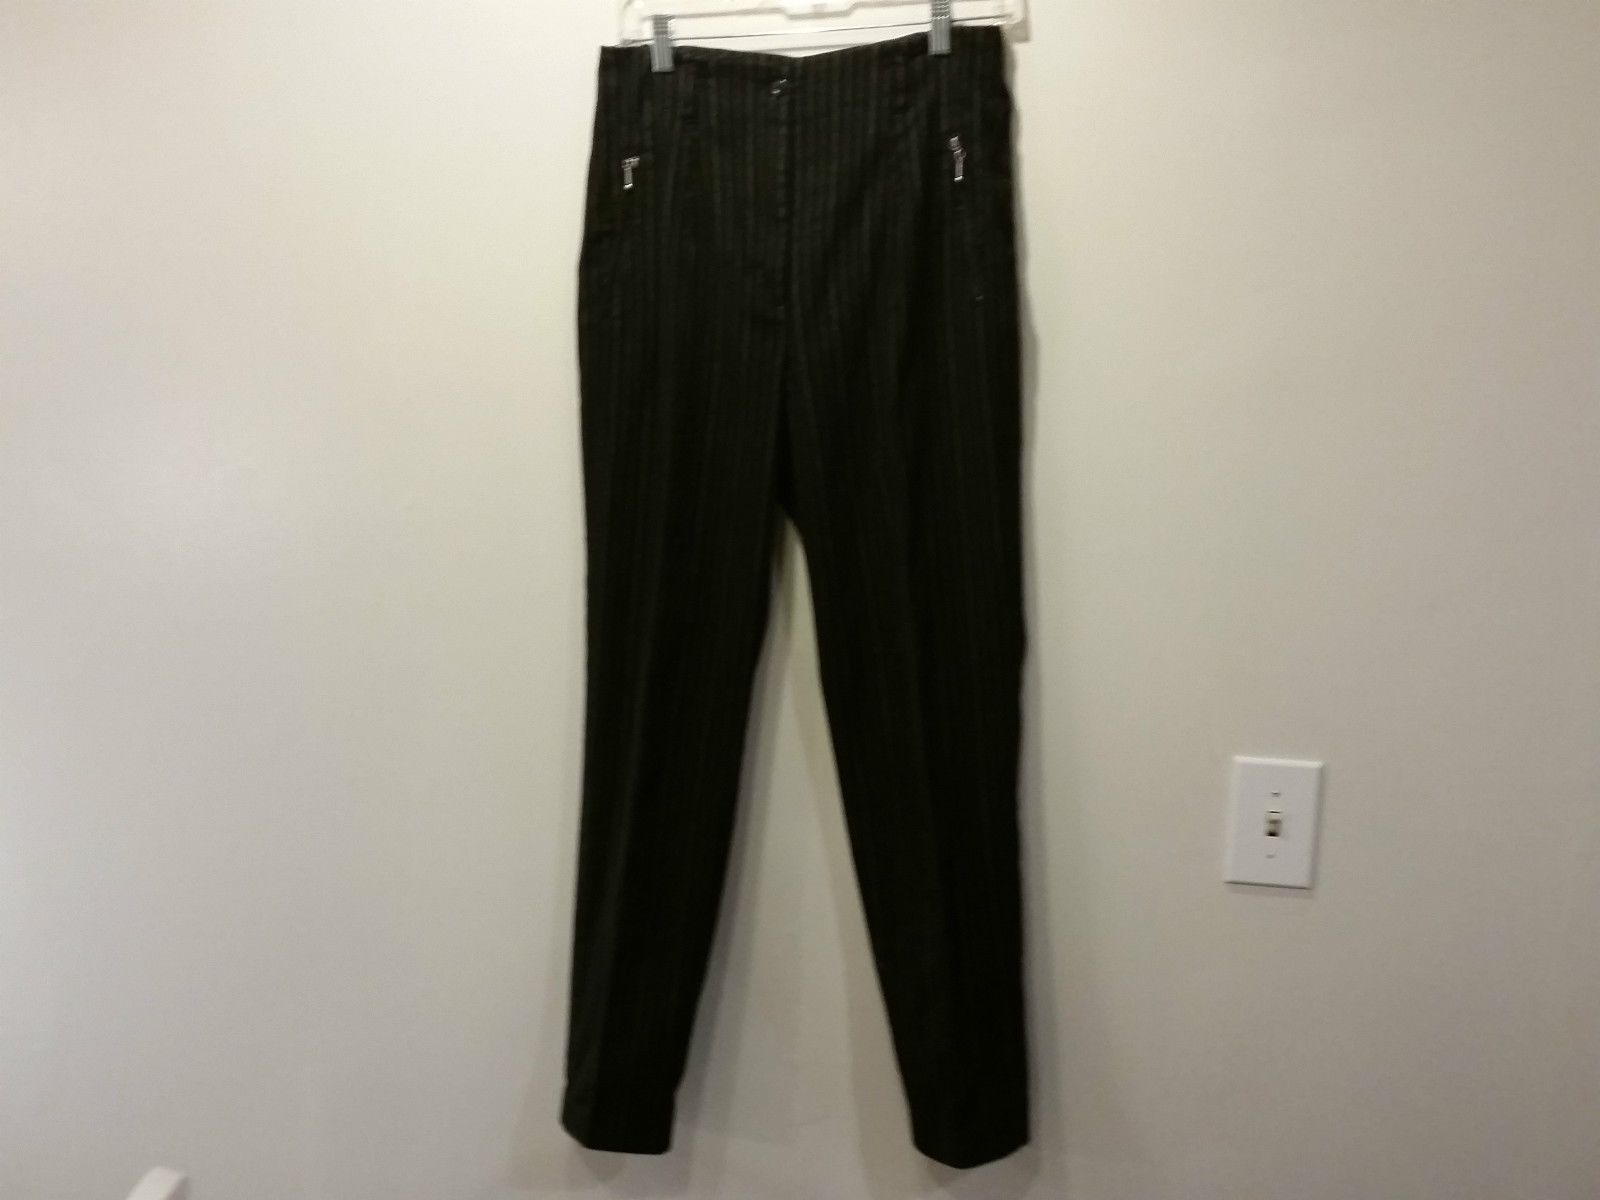 Boutique Europa by Newport News Size 10 Black Casual Pants with White Stripes